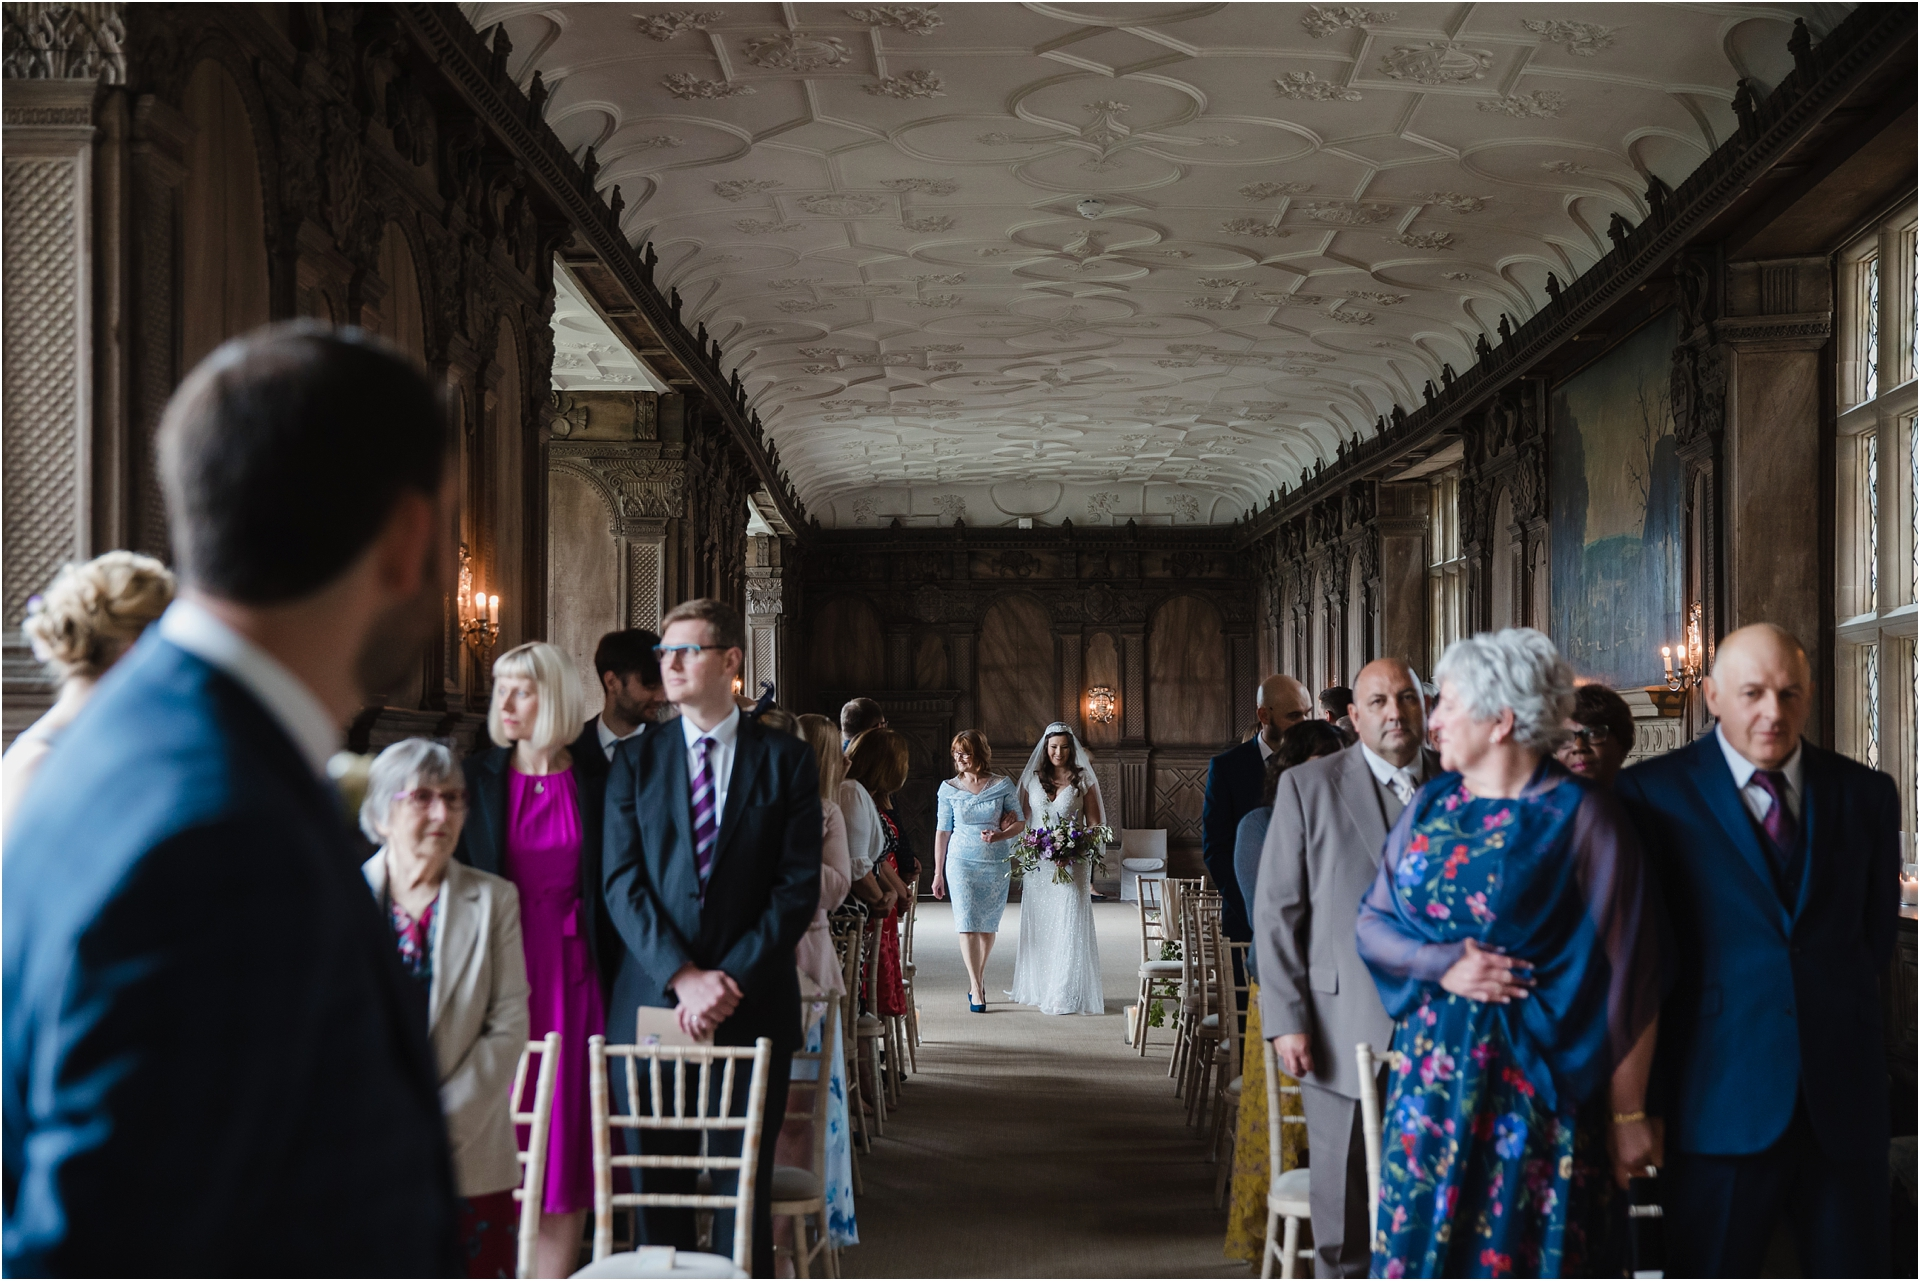 Wedding in the Long Gallery at Haddon Hall